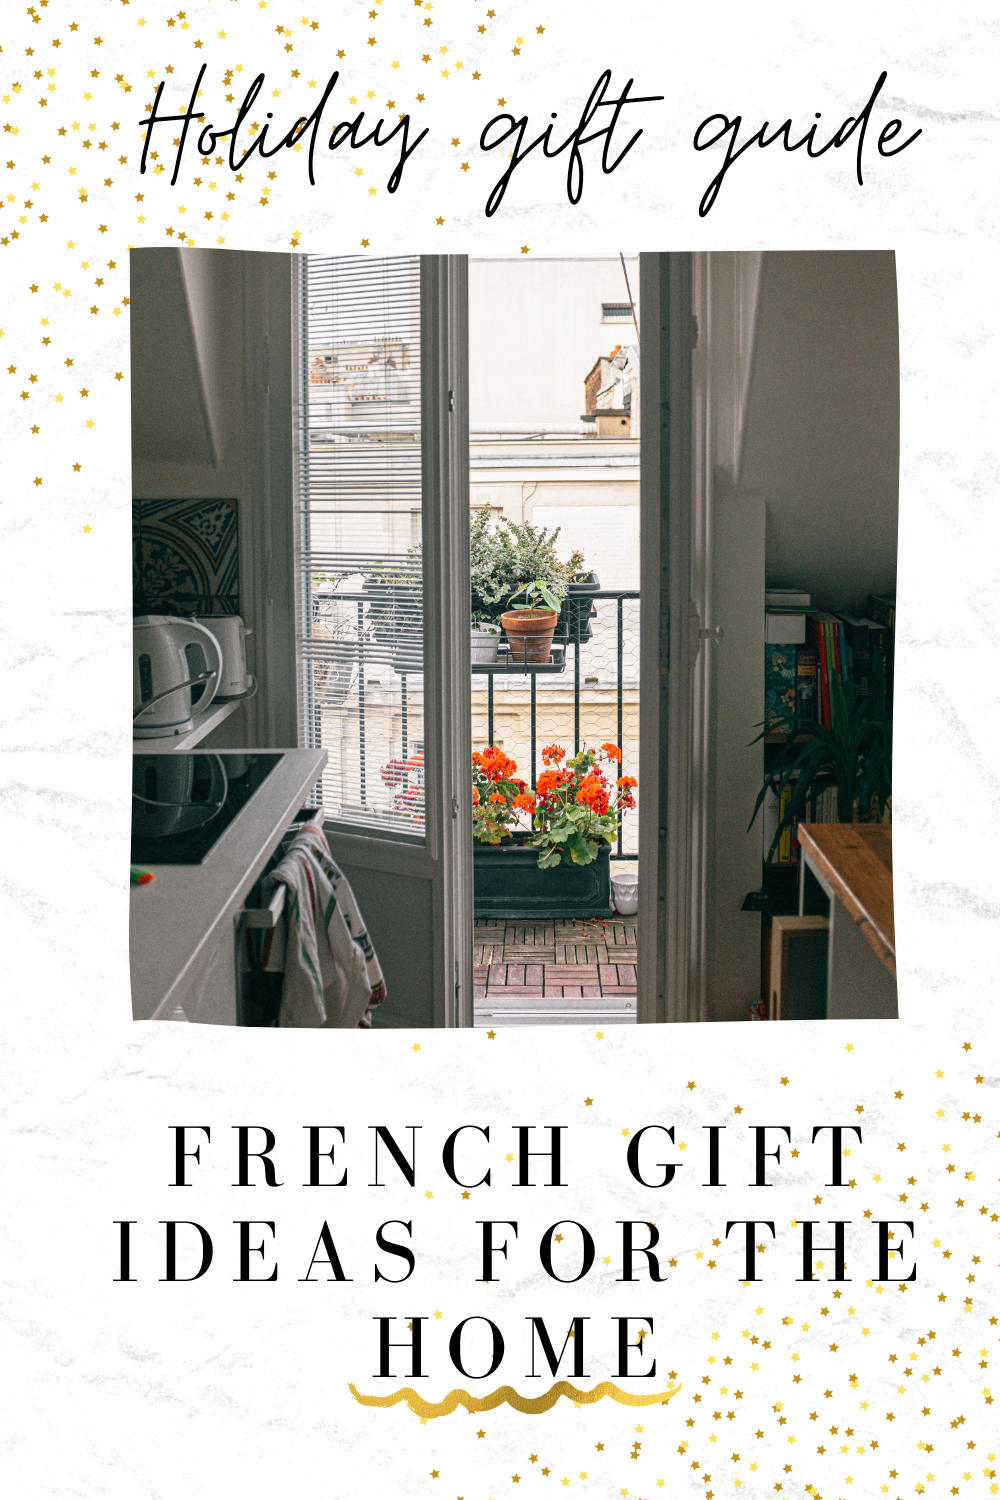 french gift ideas for the home